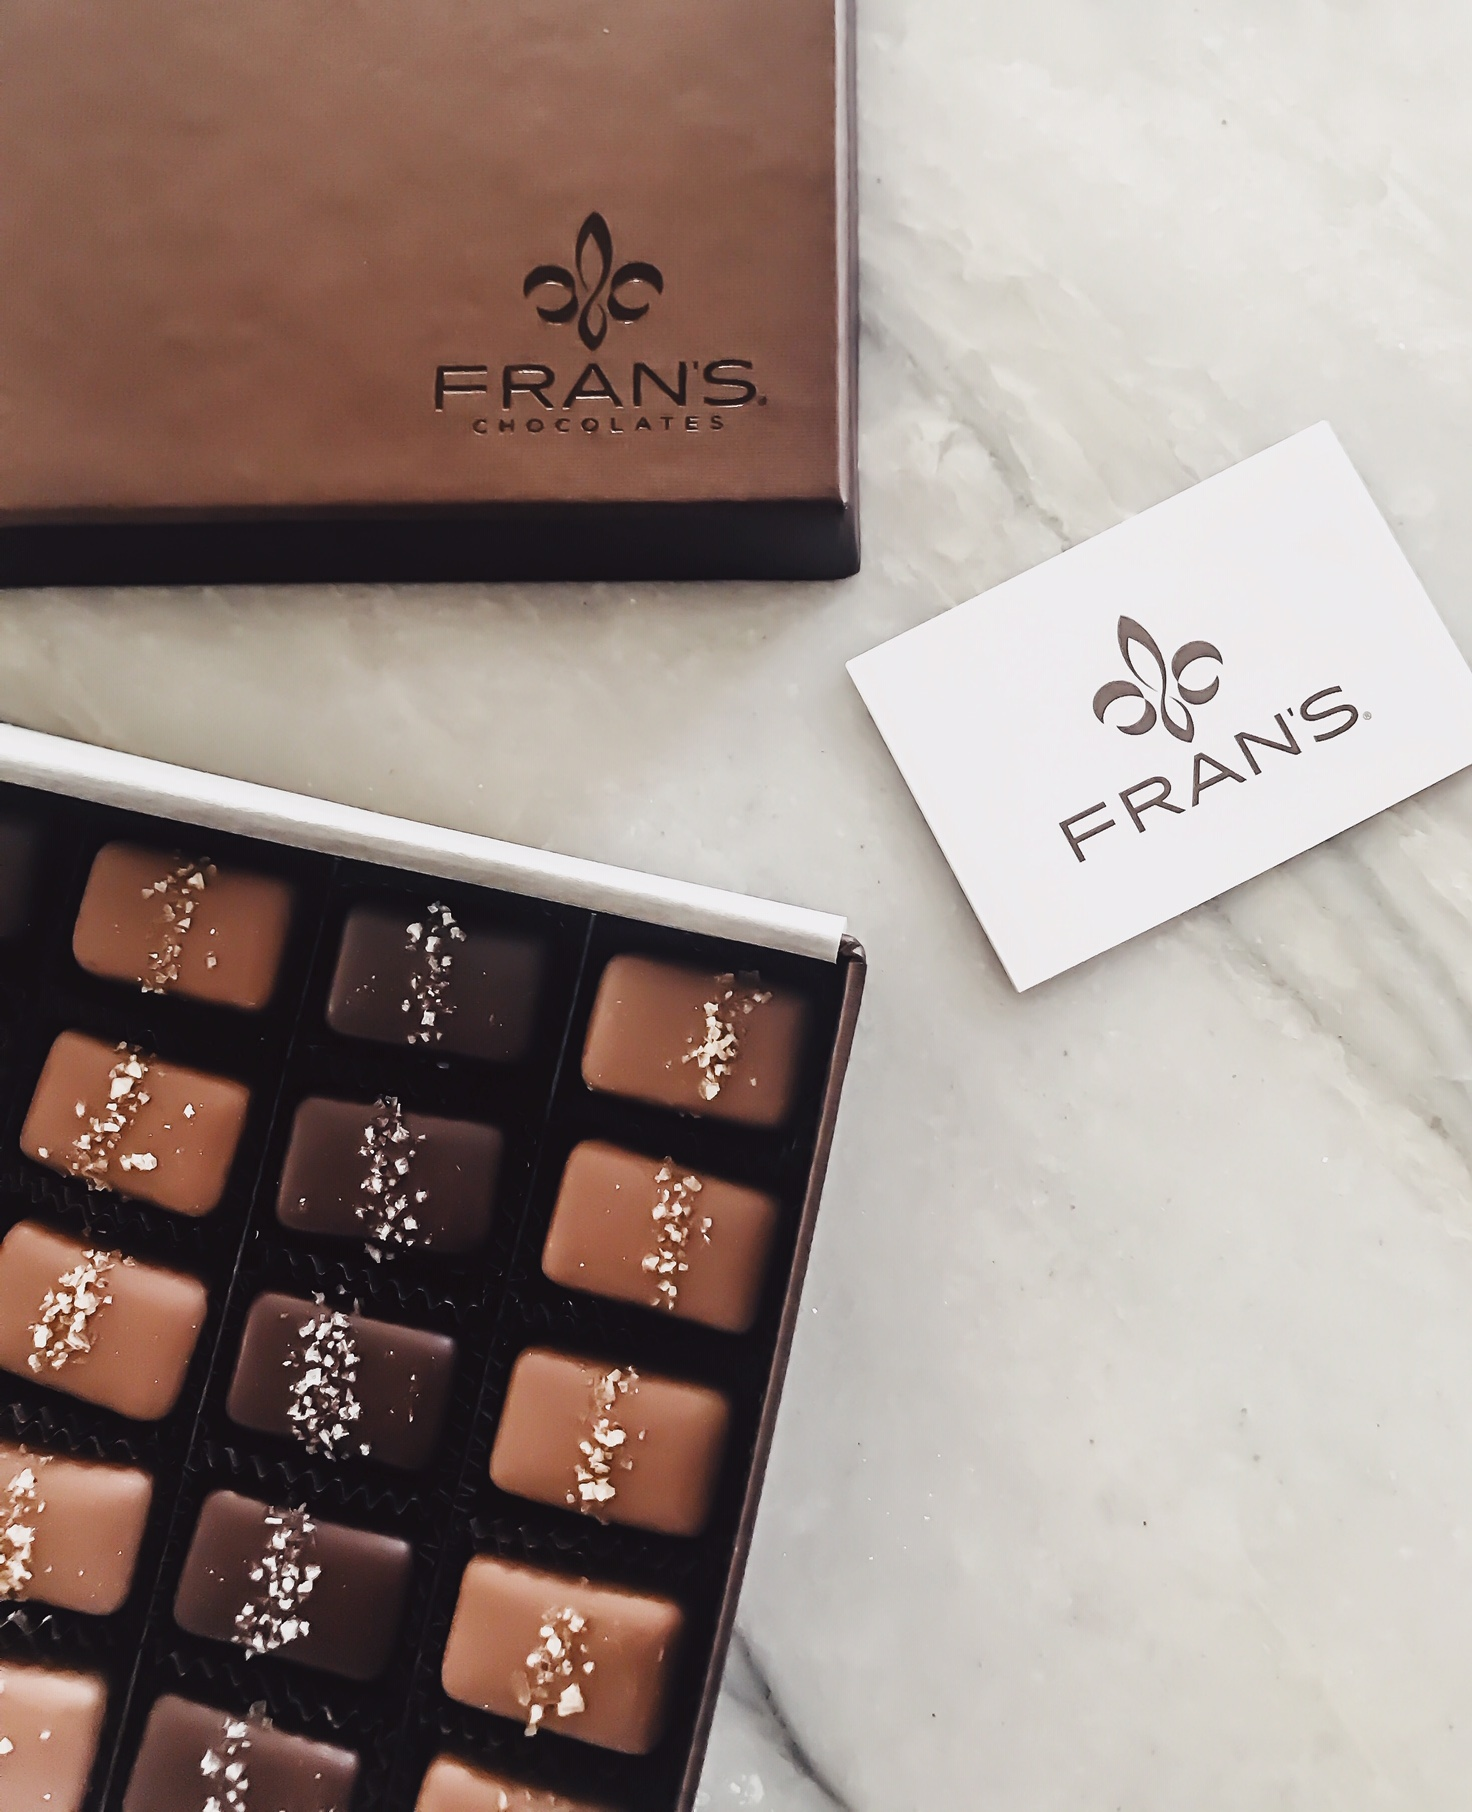 Fran's Chocolates. Salted Caramels. Tips For Hosting During The Holidays. How To Create A Memorable Experience For Your Guests At Your Home. ScentSicles instant Christmas Aroma, My/Mo Mochie Ice Cream desserts, Cinzano Prosecco Prosecco Bellini recipe, Fran's Chocolates, Salted caramels. #sponsored #ad #edcrepeatbboxx #holiday #ideas